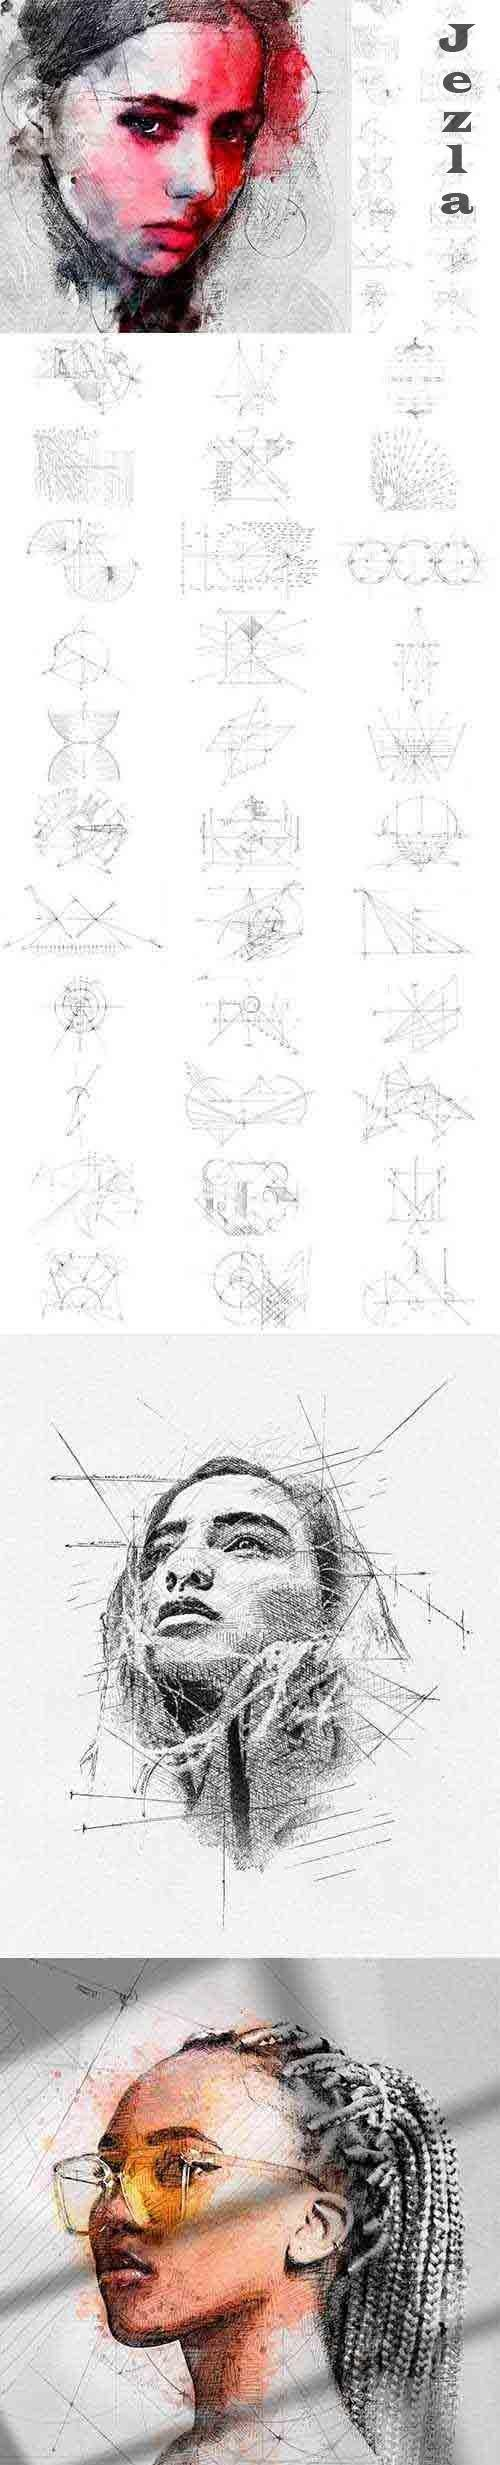 32 Technical PS Drawing Brushes 4933592